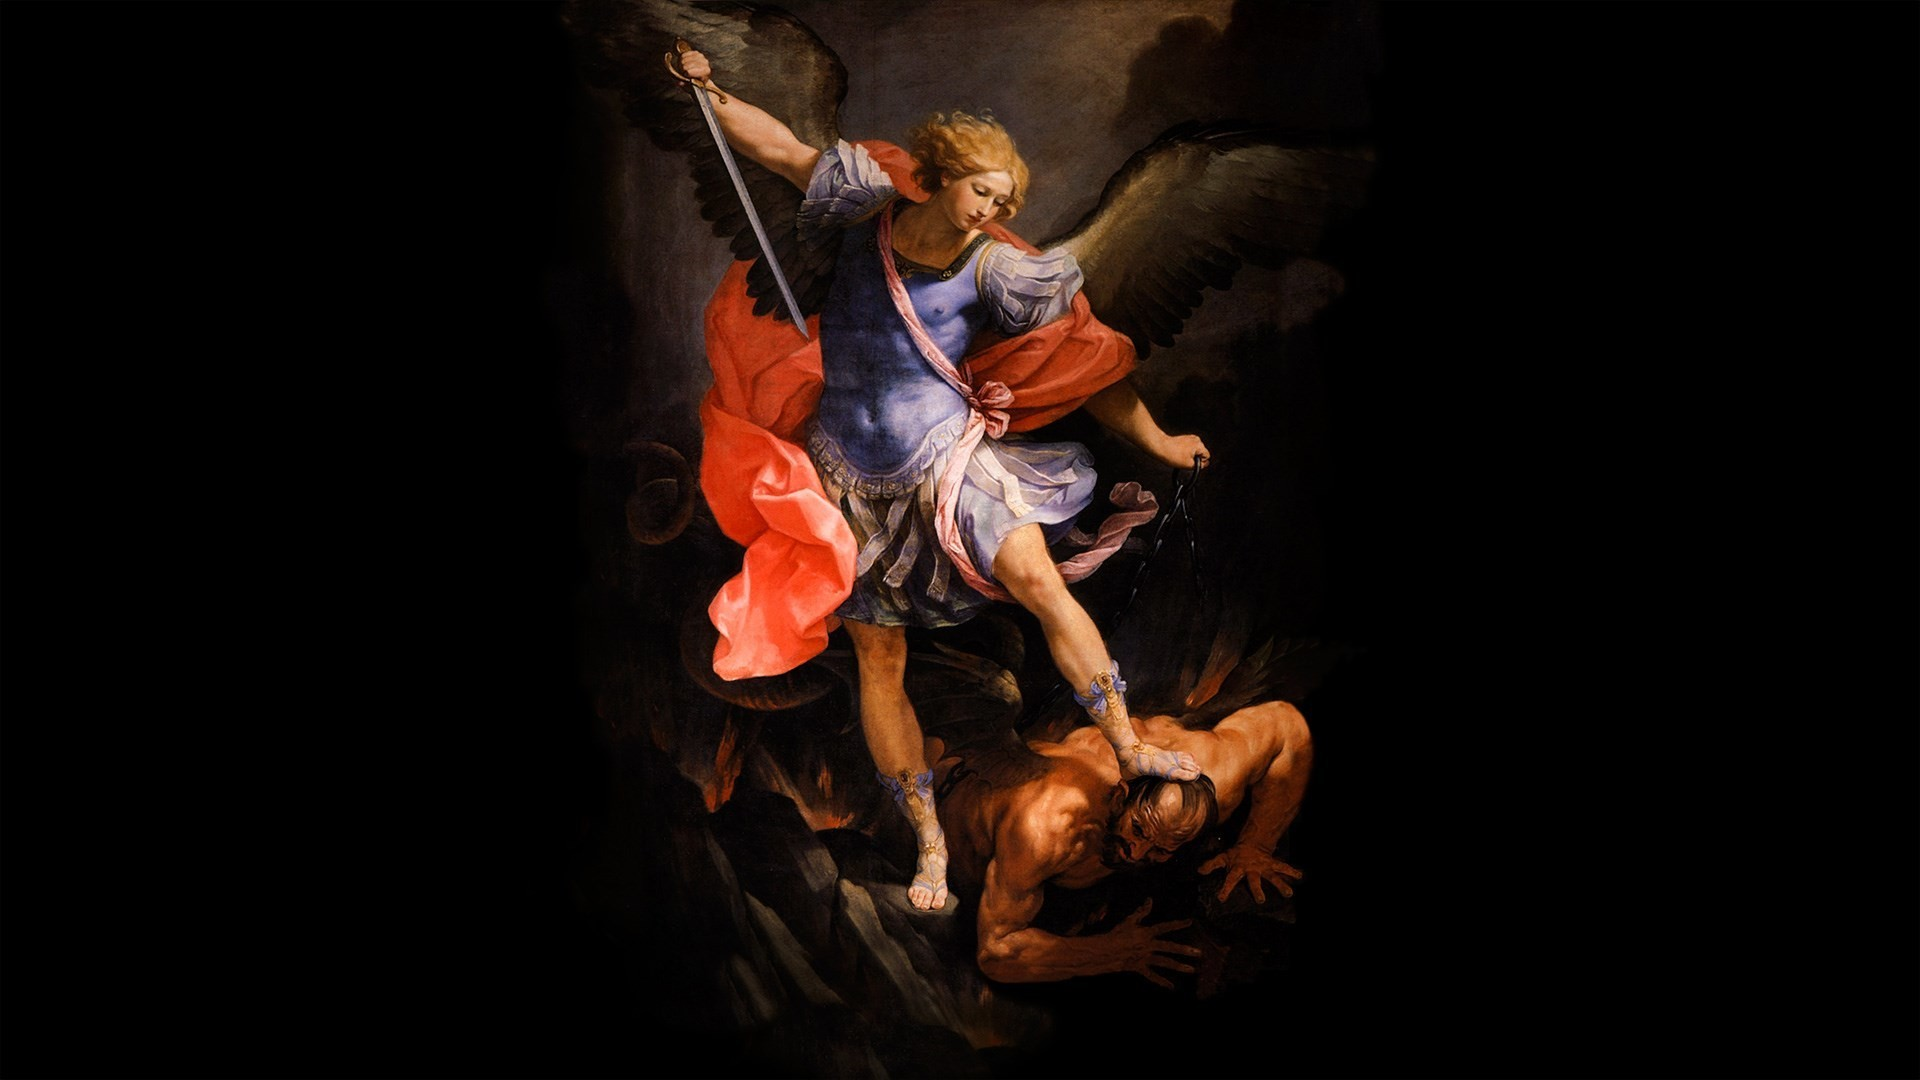 St Michael Wallpaper 57 Images